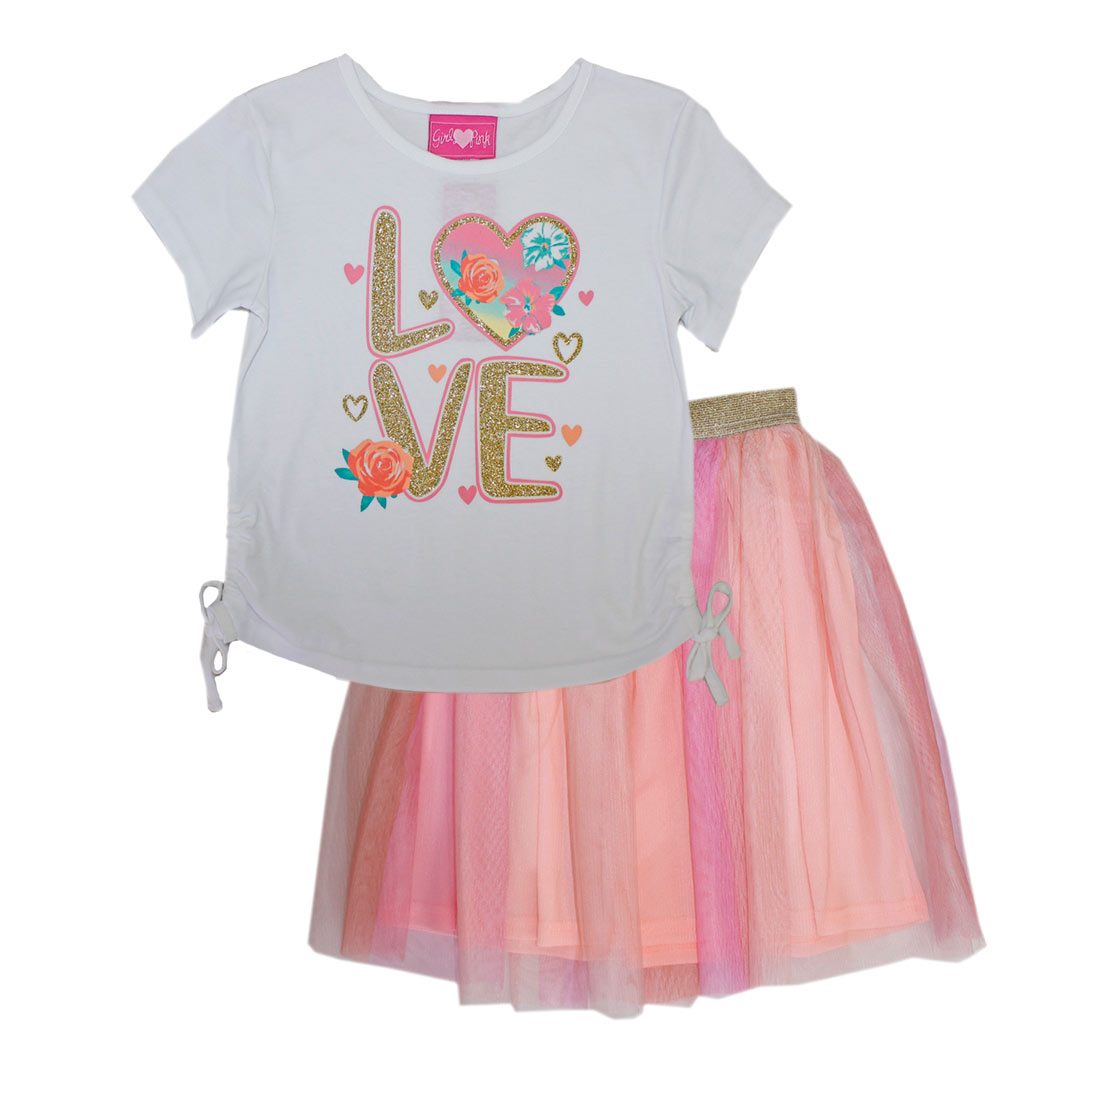 GIRLS PINK 7-12 Love Screen Top and Tulle Skirt